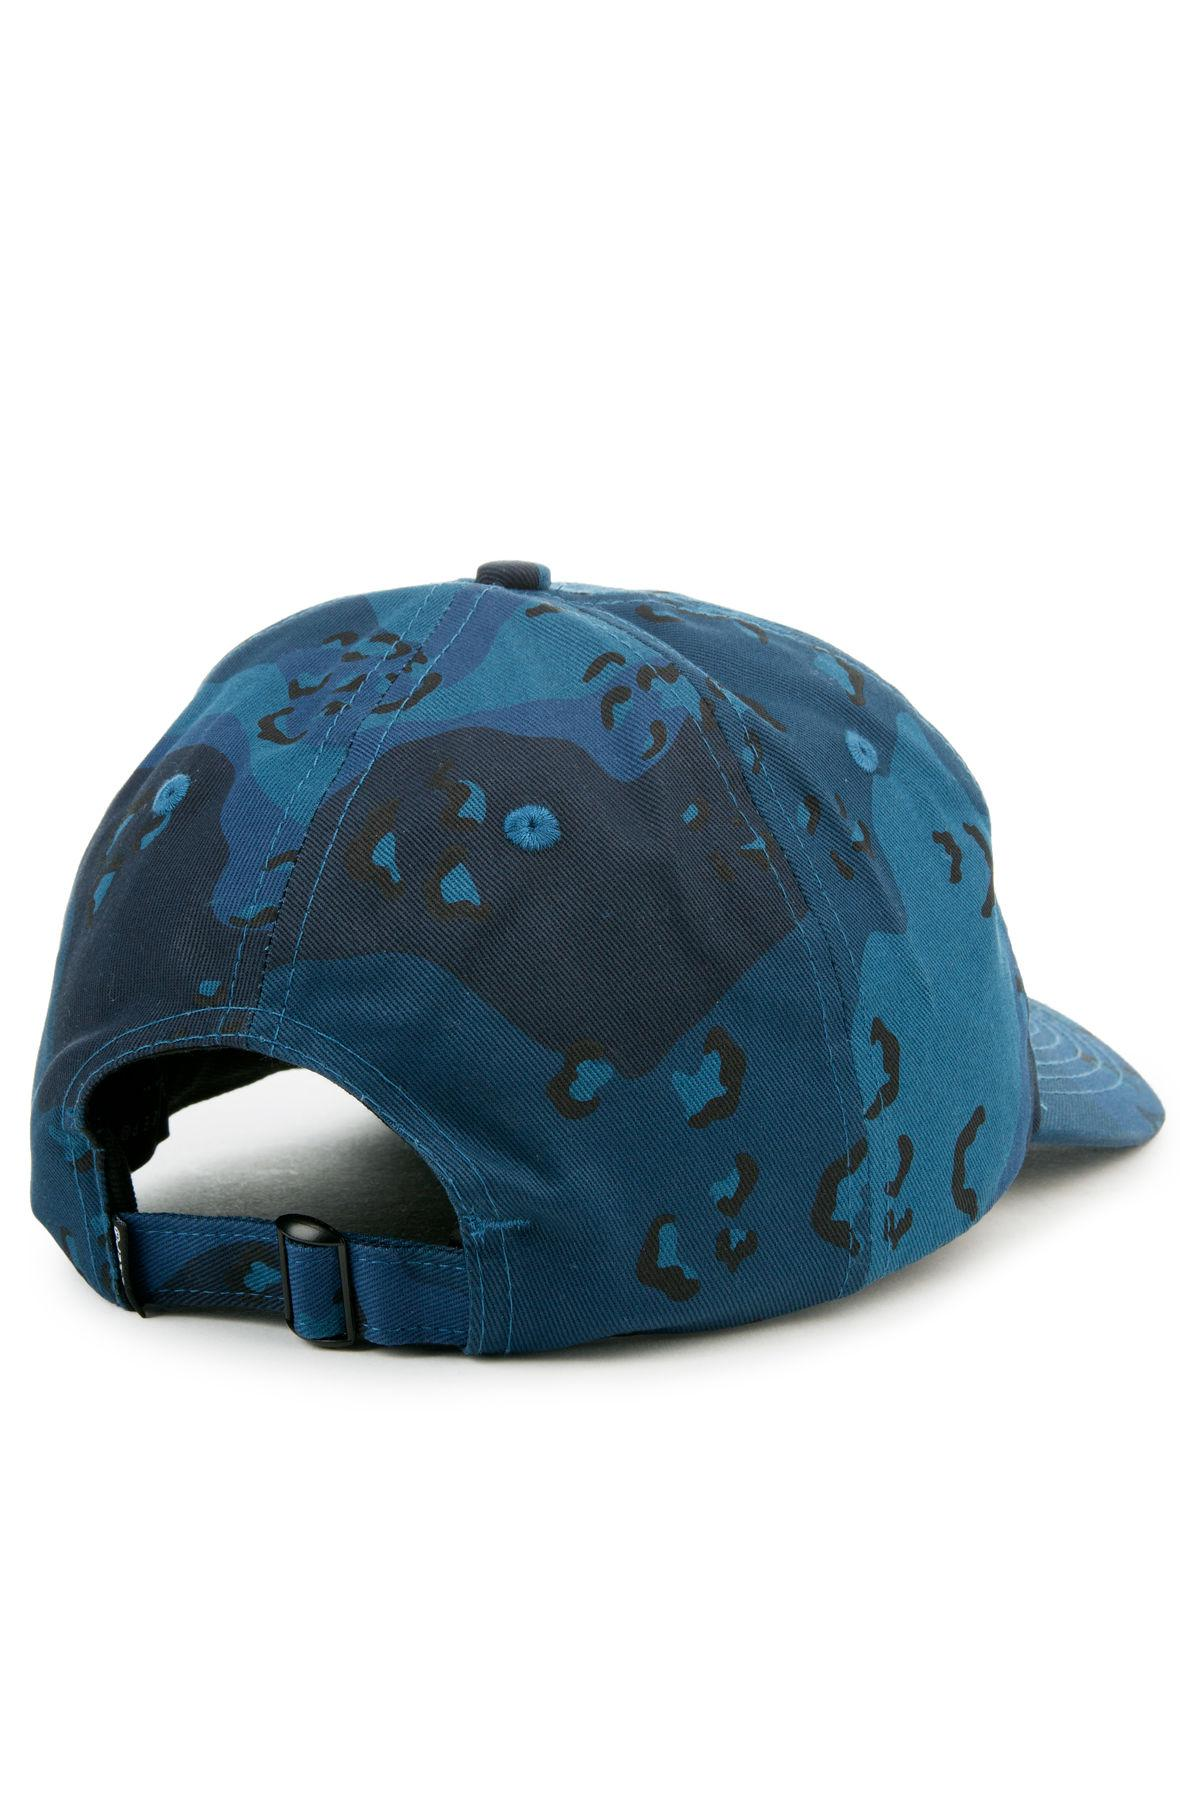 detailed look 93e55 c2d64 Lyst - 10.Deep The Sound   Fury Camo Dad Hat In Blue Chips in Blue ...